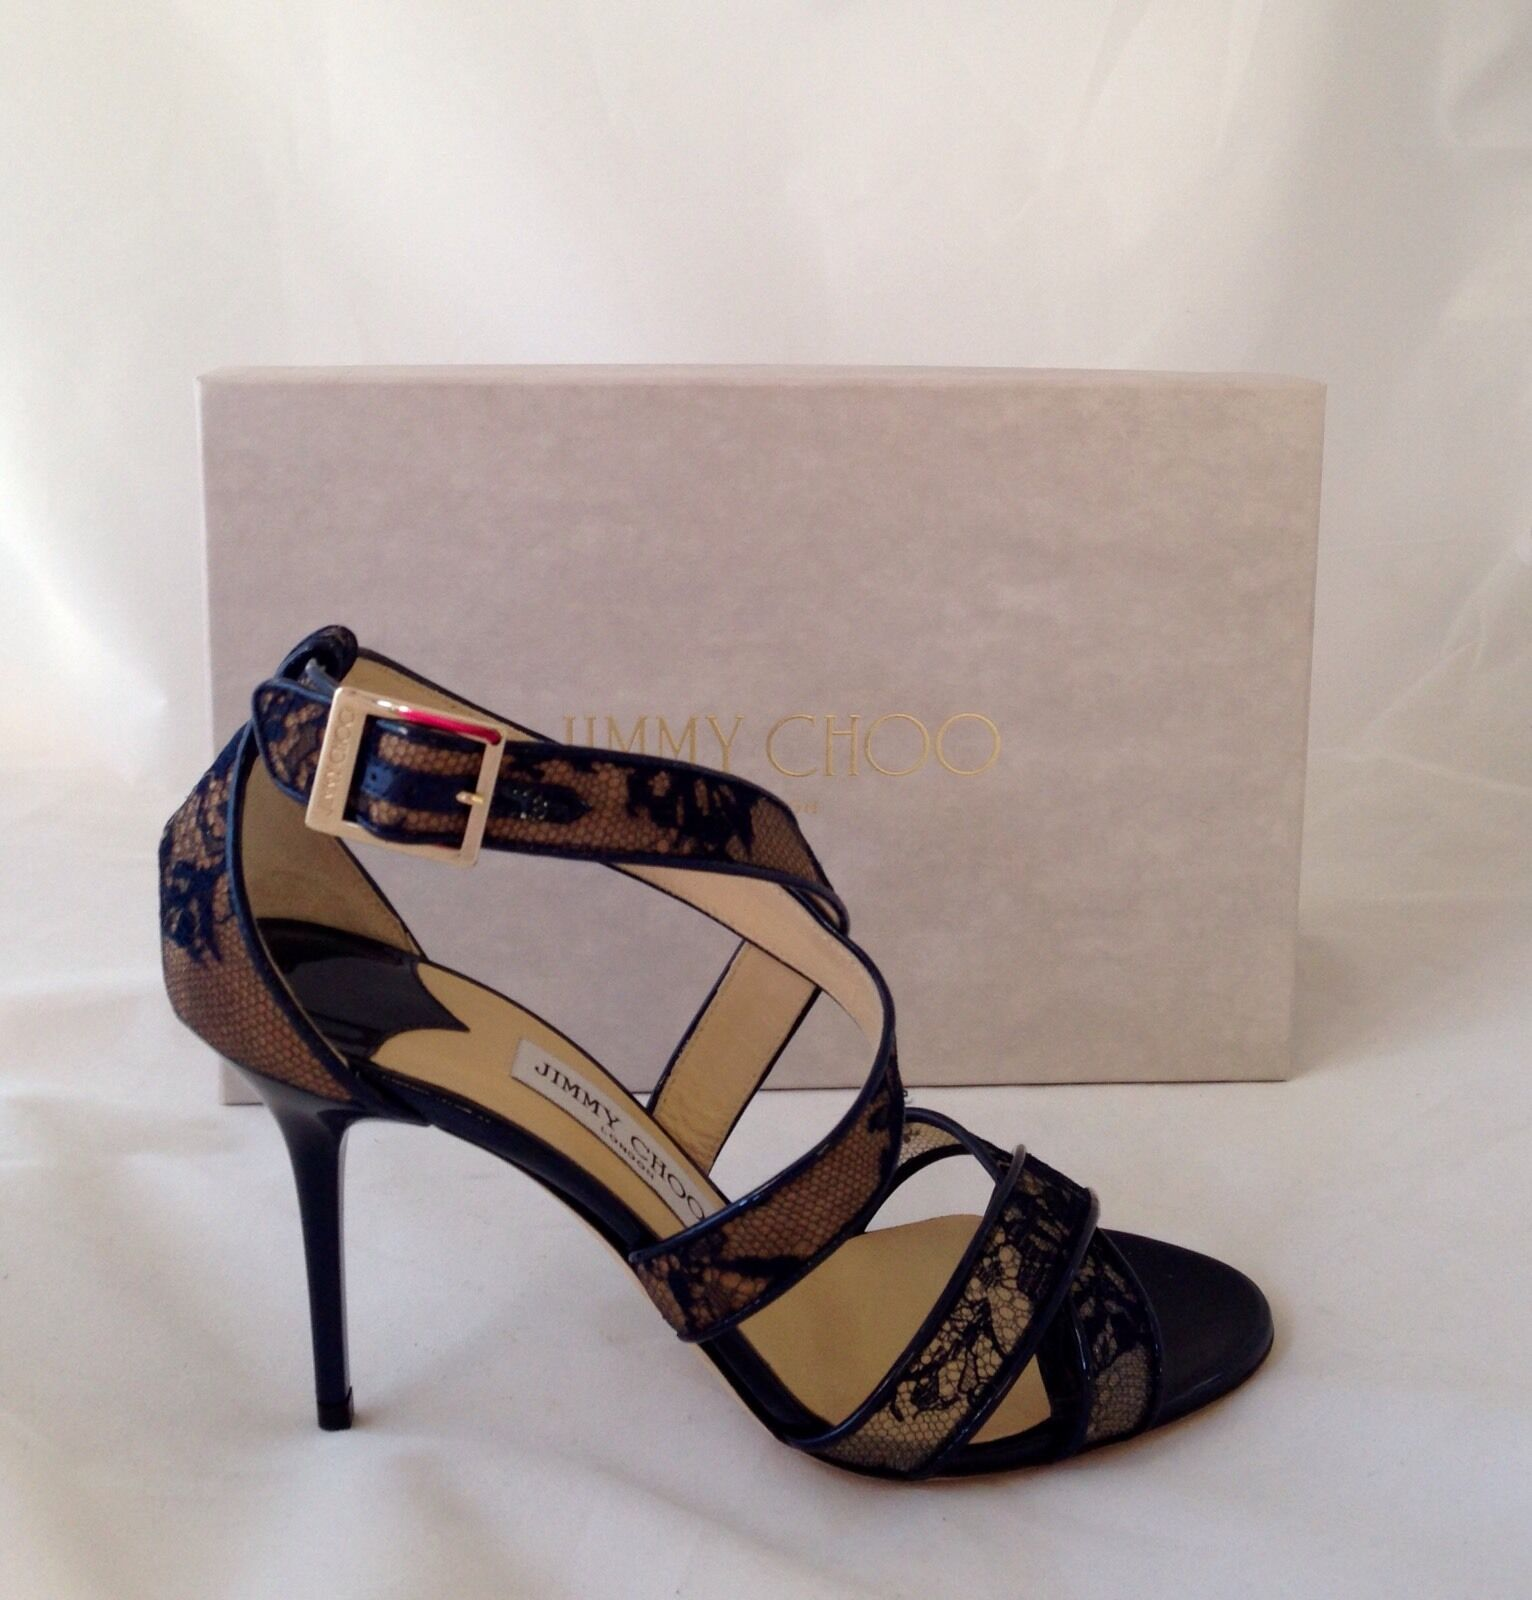 NIB Sz 9.5  850 Jimmy Choo 'Loiuse' Navy Blue Lace -Stilletto Heels eu 39.5